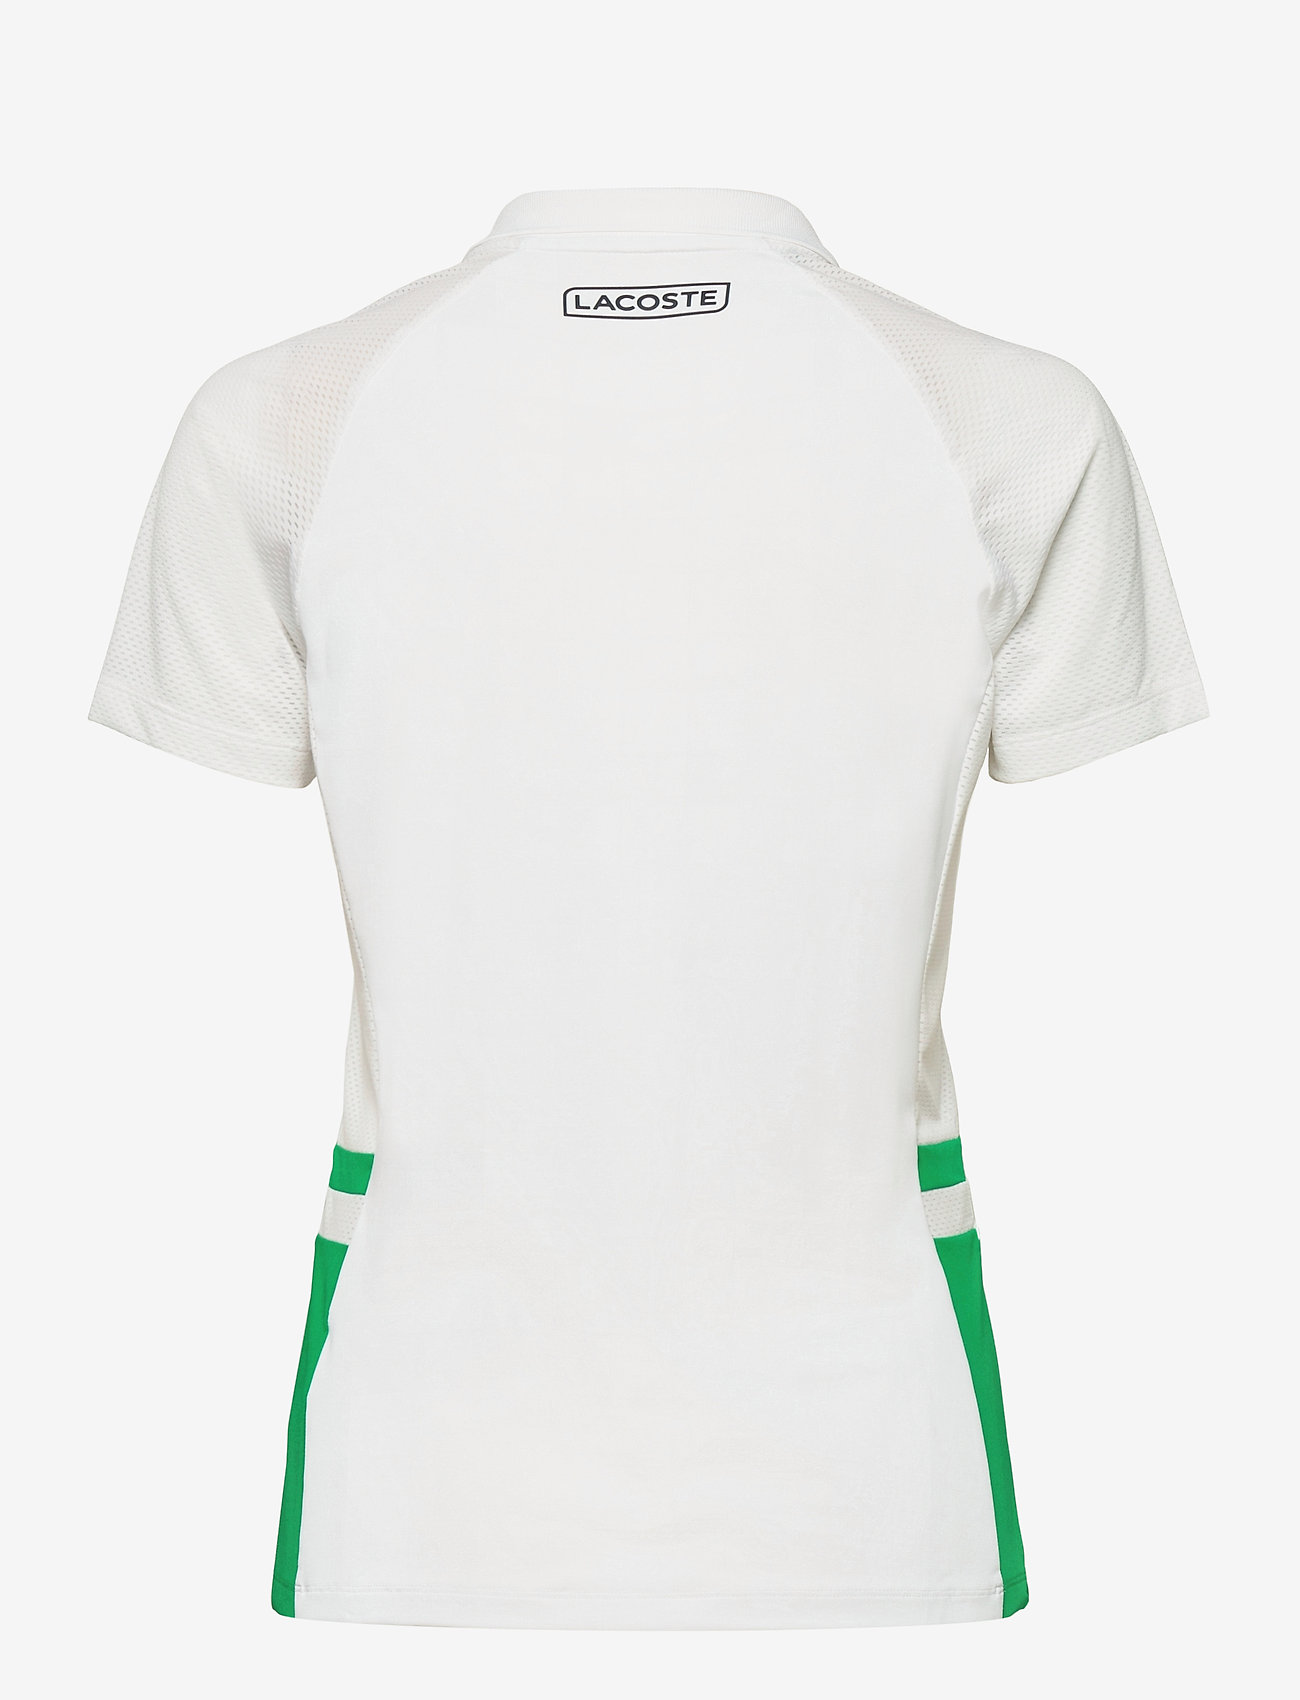 Lacoste - Women s S/S polo - polo's - white/palm green-navy blue - 1